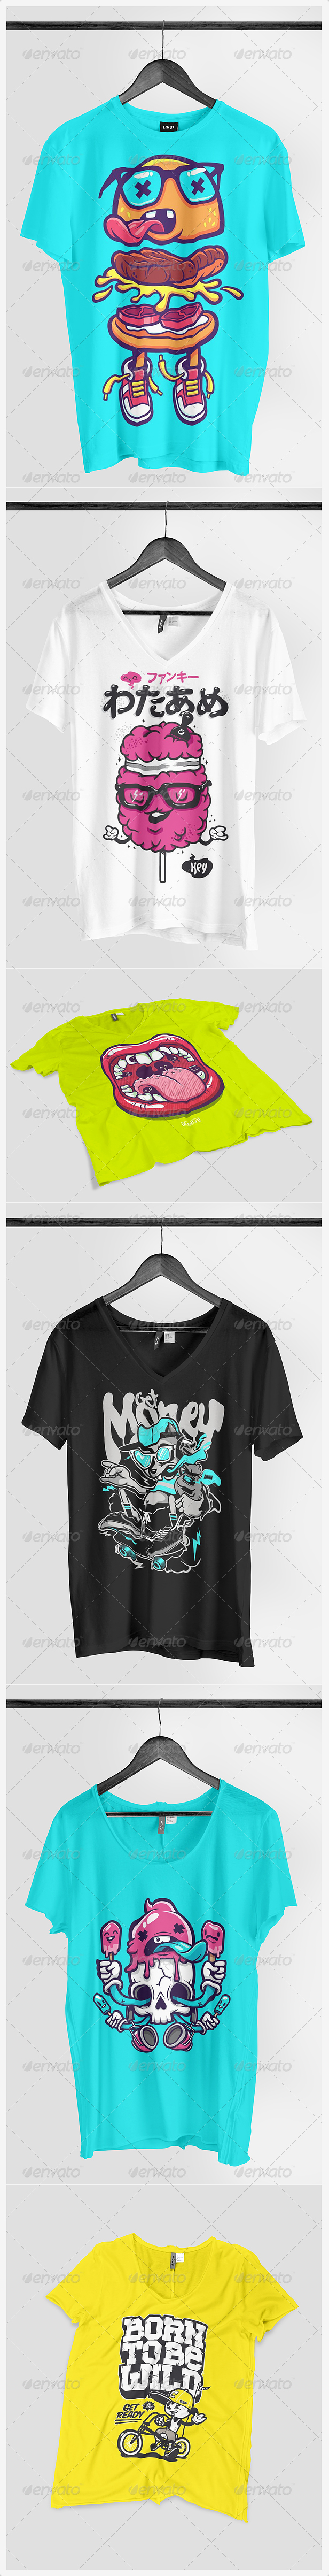 Realistic T-shirt Mock-up Pack2